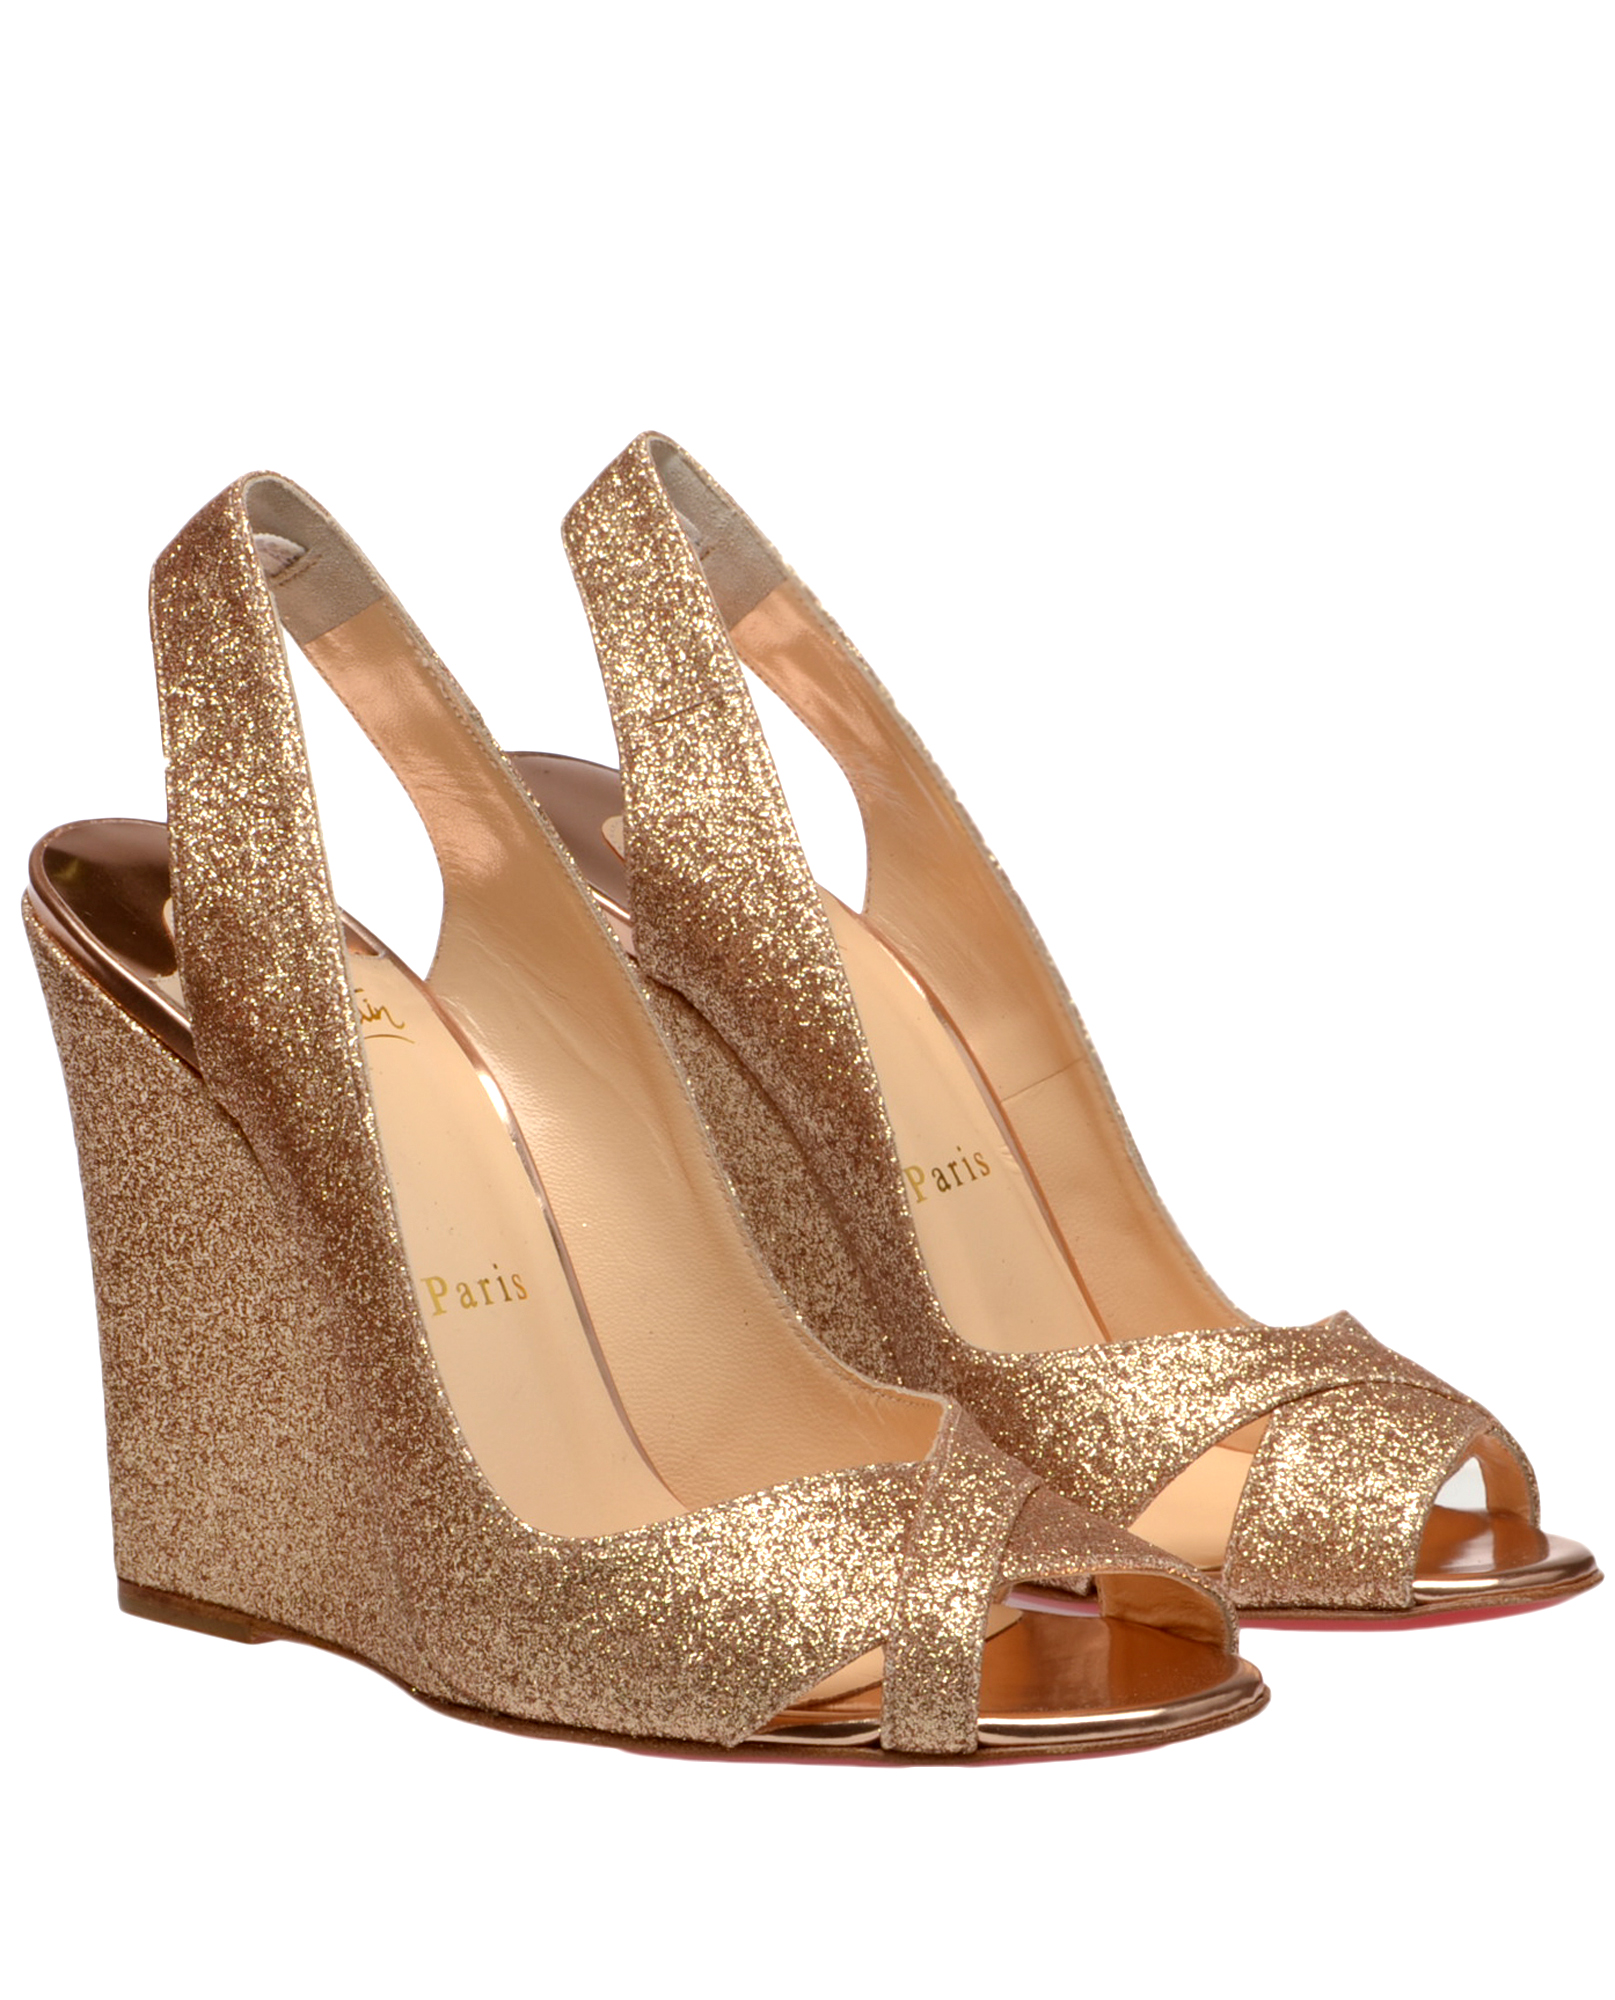 louboutin wedding shoes christian louboutin maplesoft bridal shoes in metallic lyst 5604